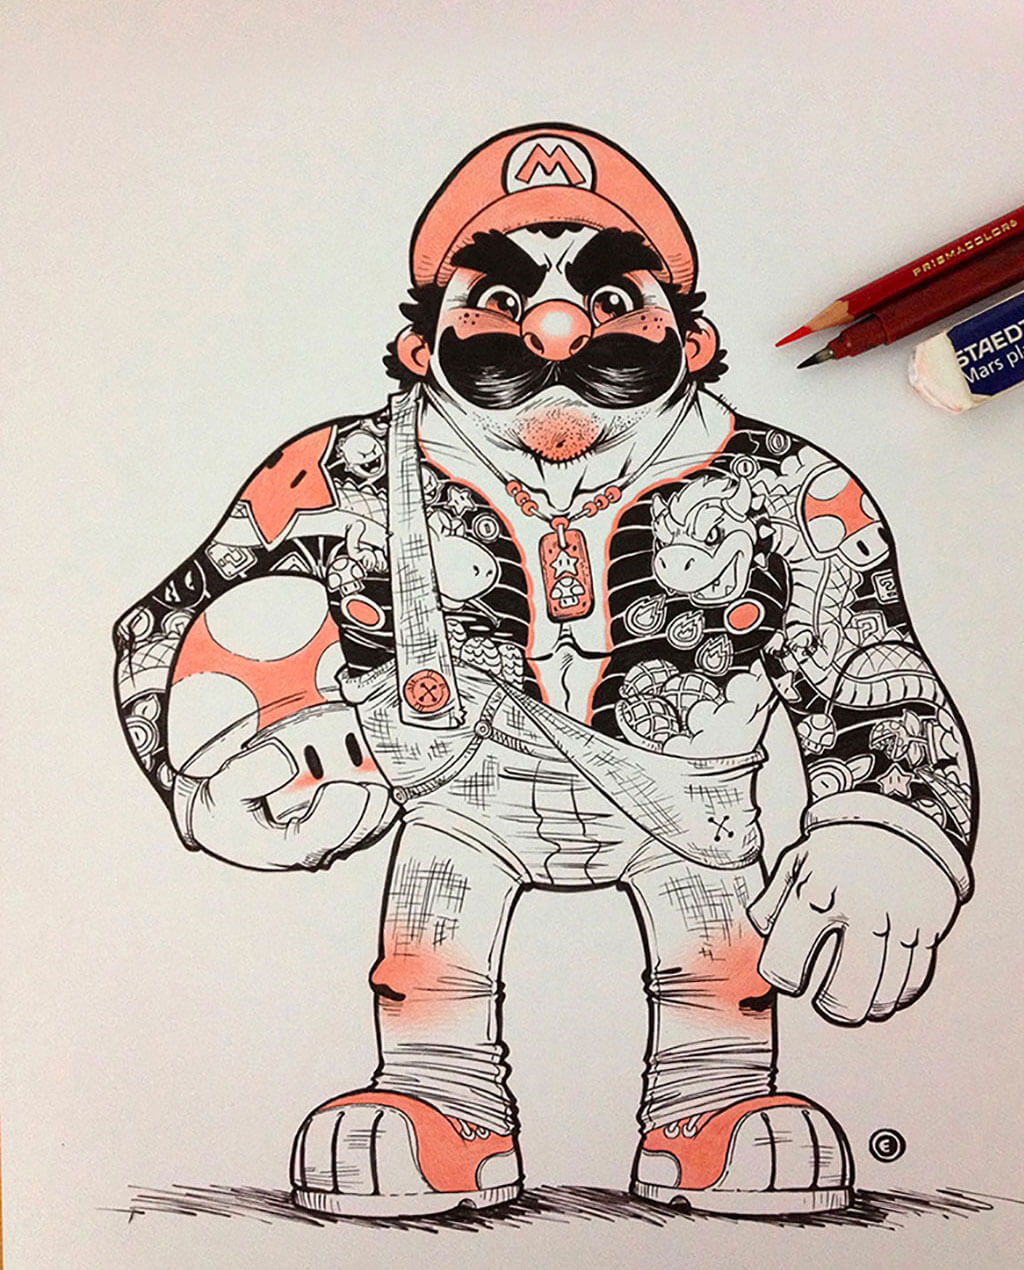 Mario Fan Art by Eduardo Vieira